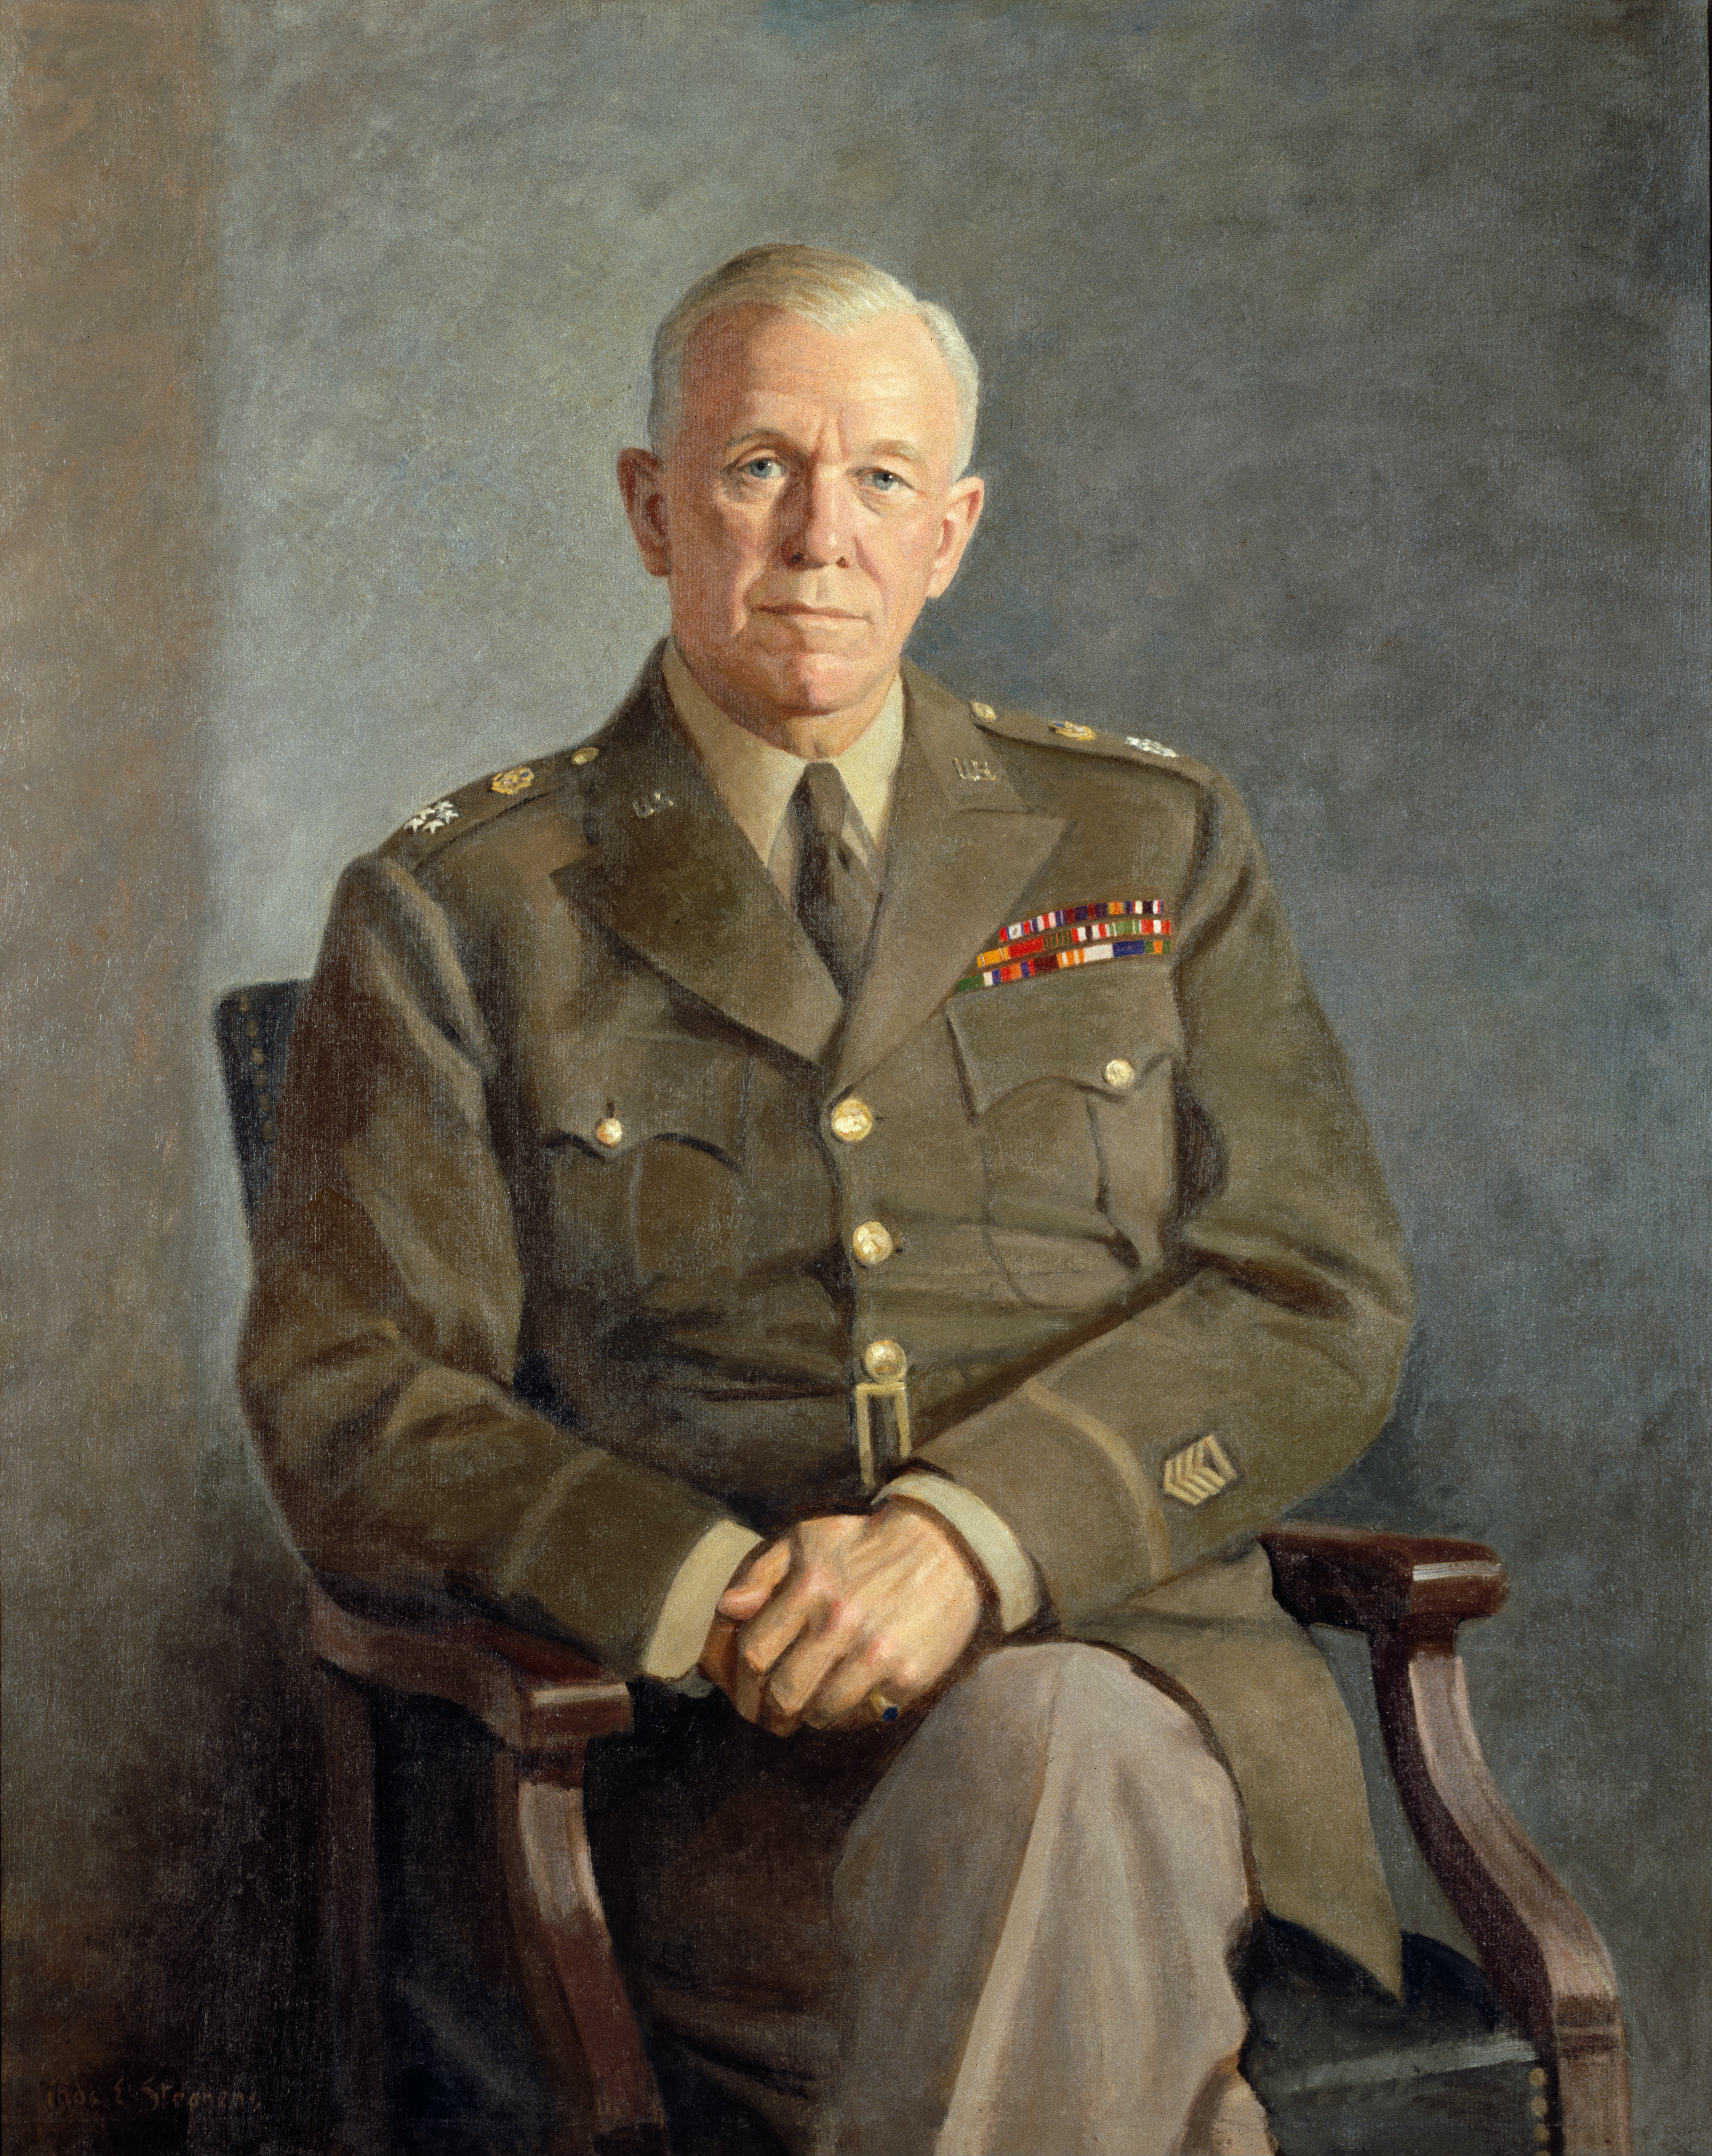 General george c marshall quotes -  Which